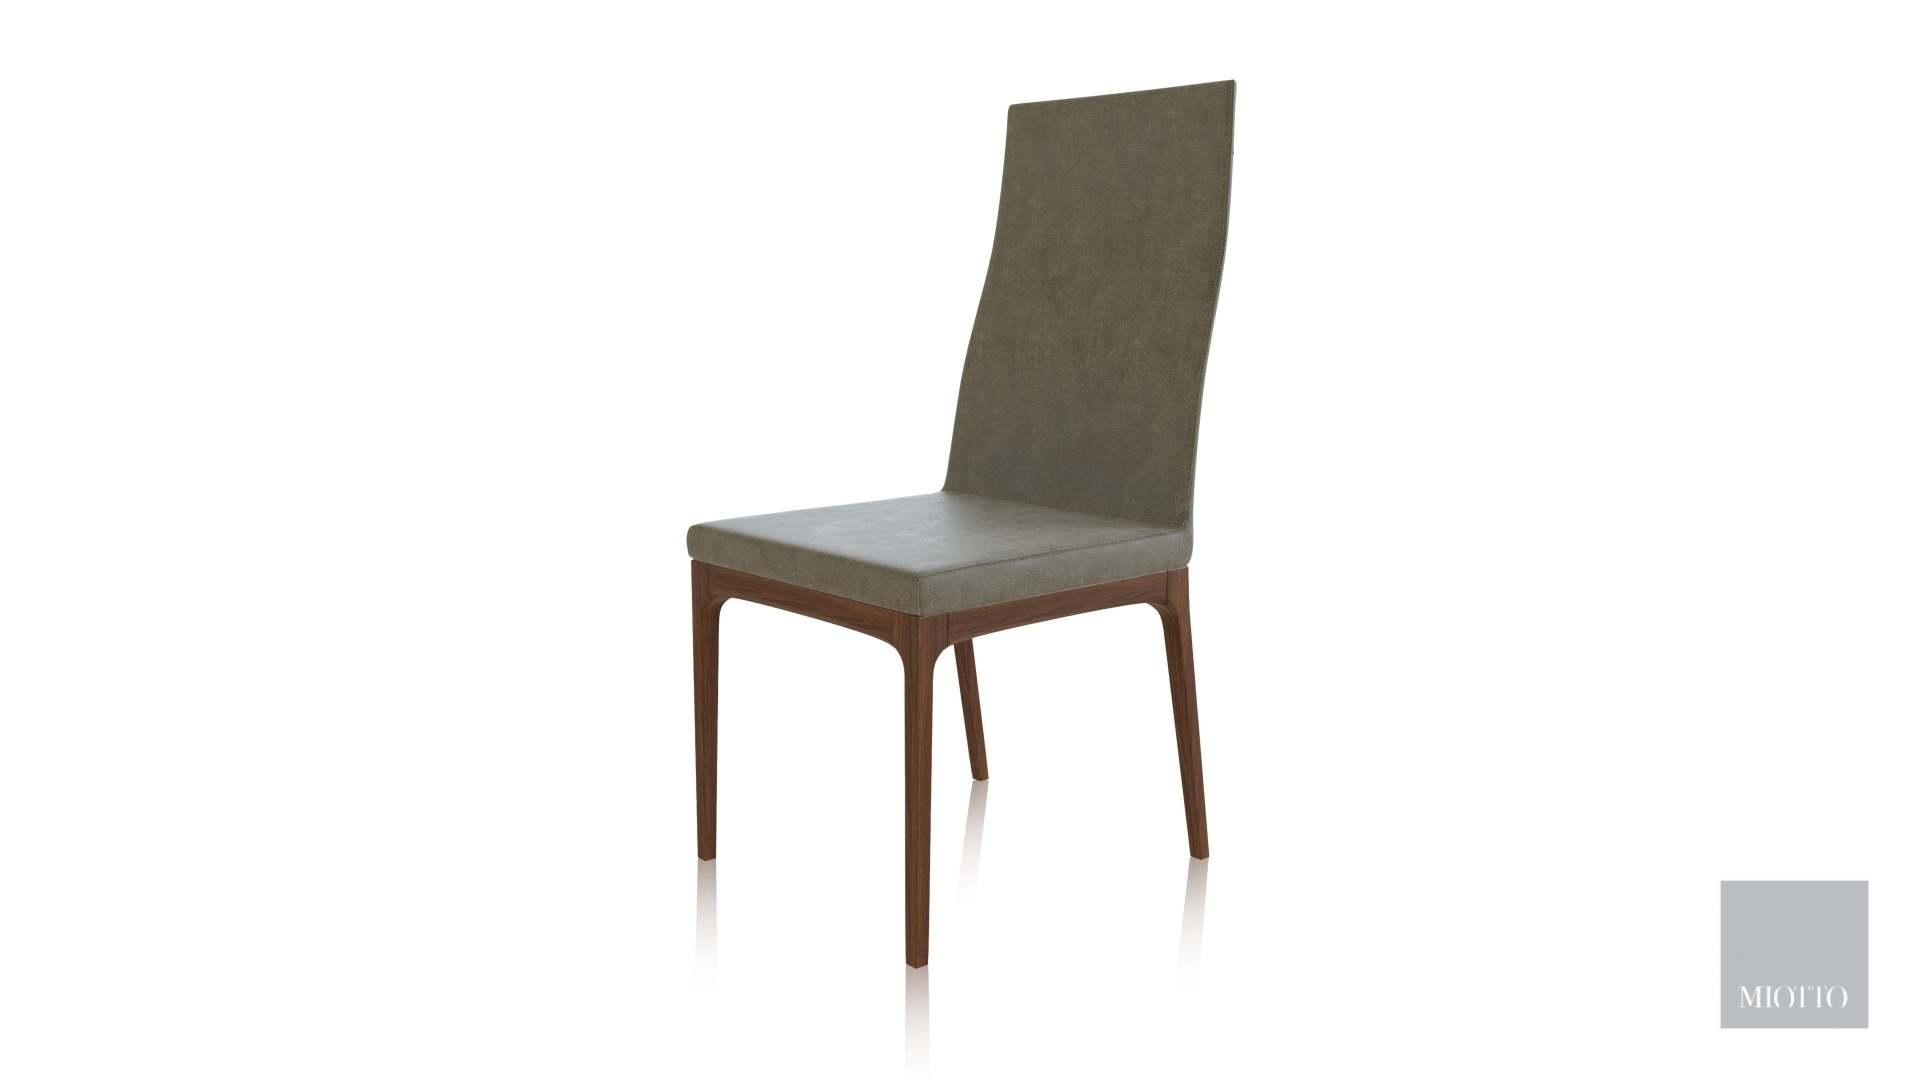 miotto_lanzo DC light grey front T miotto dining chair furniture